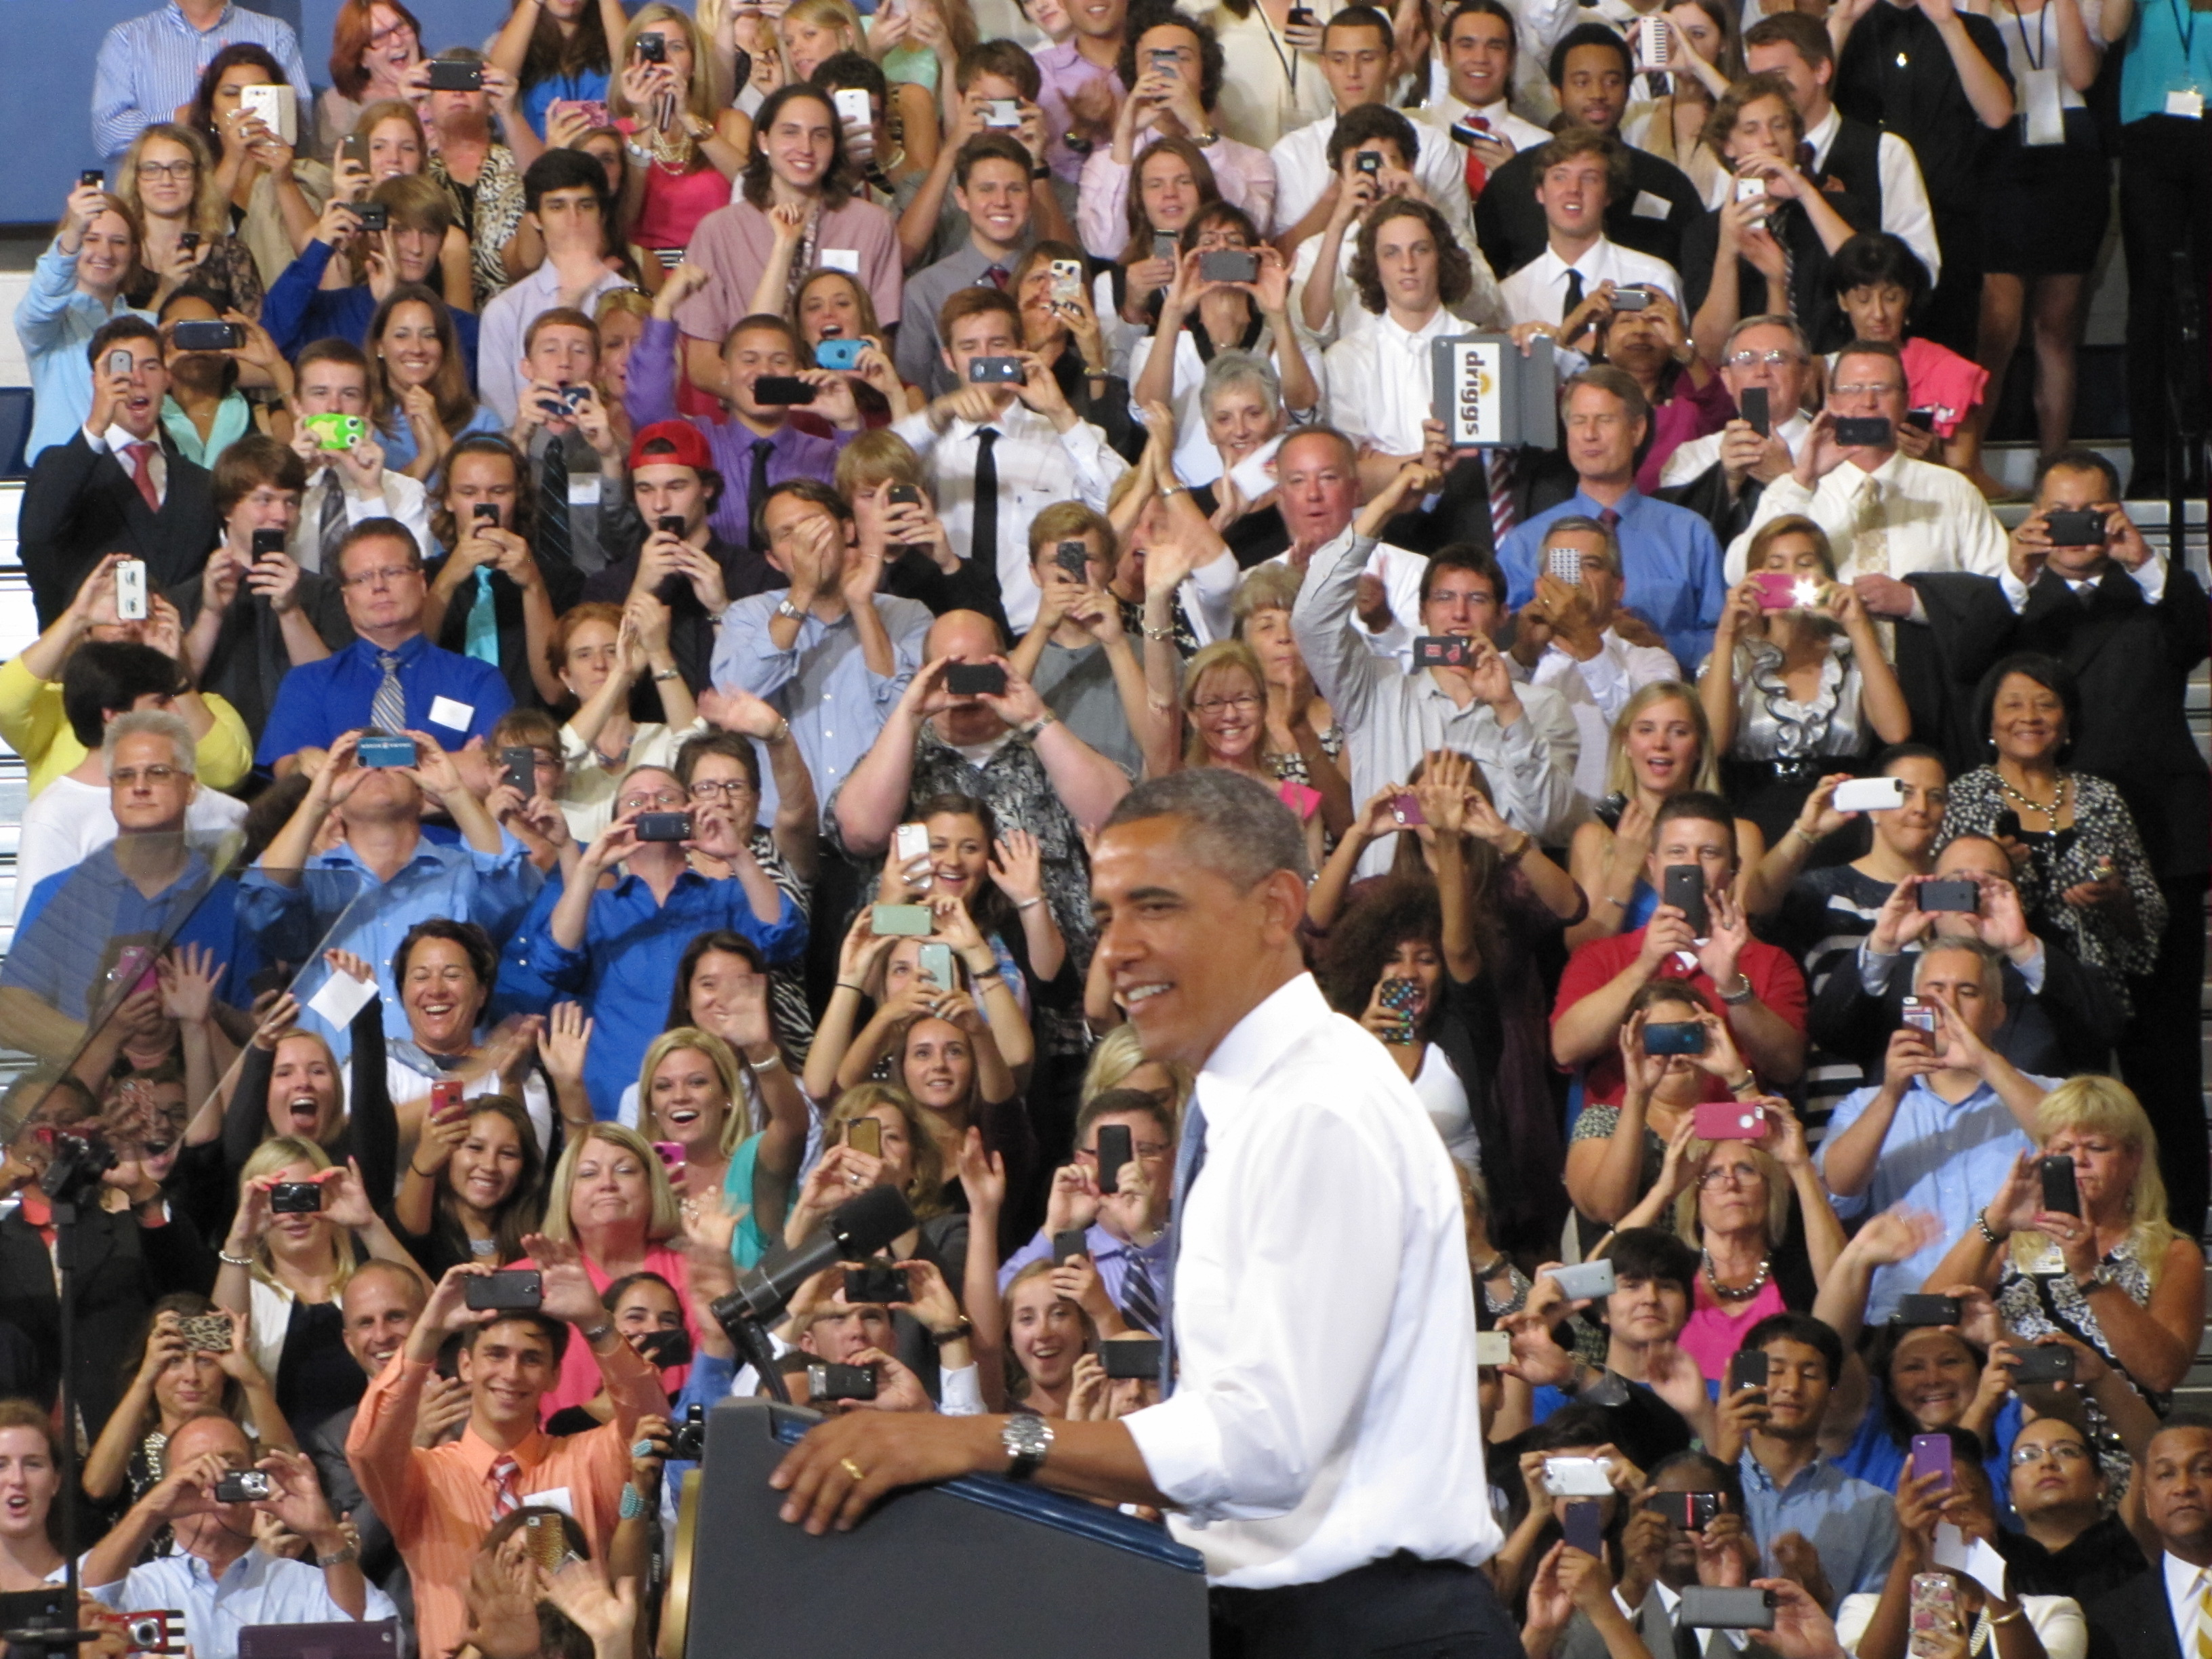 obama visits phoenix, lays out housing plan | kjzz